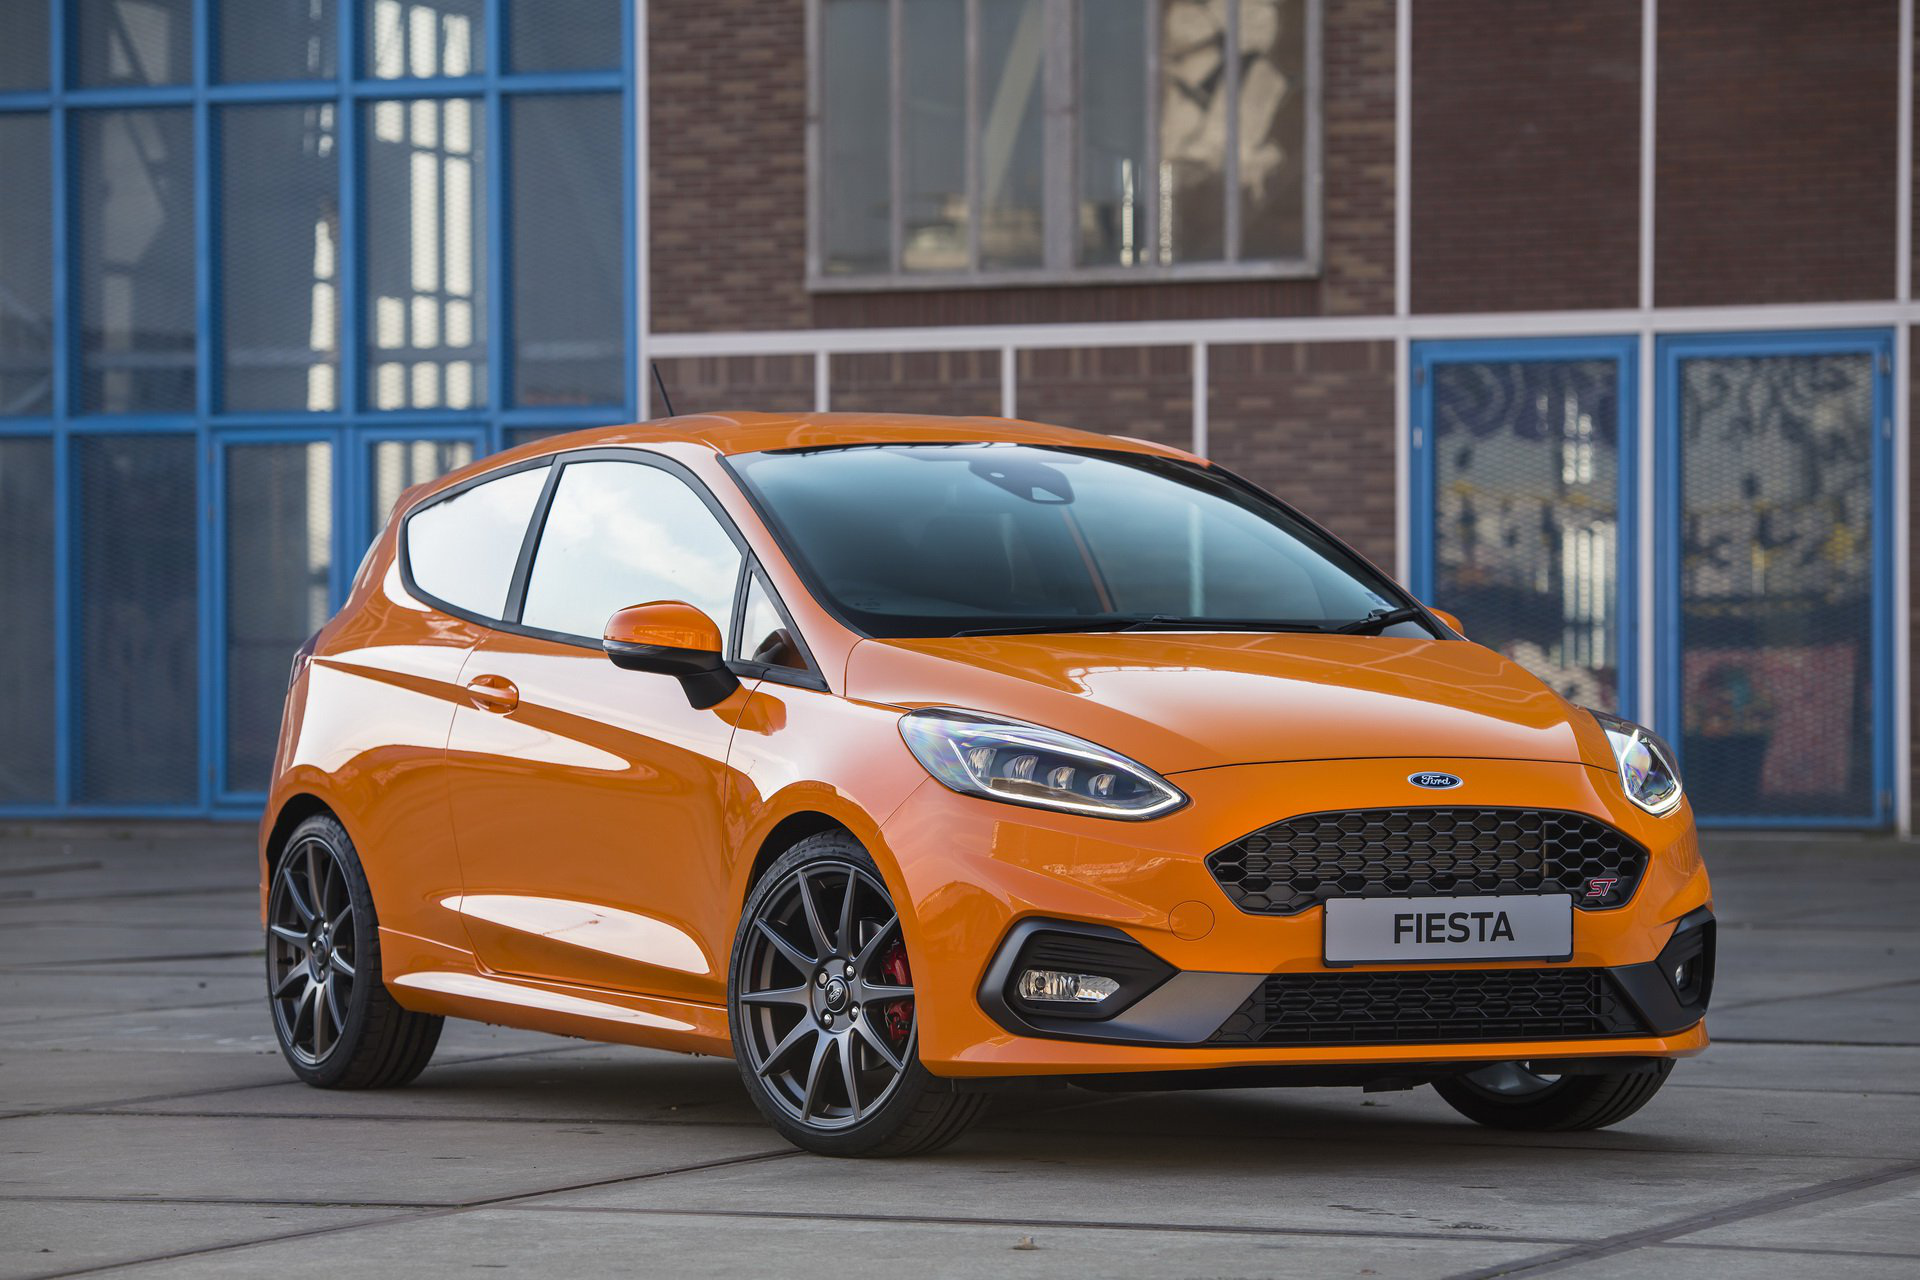 New Ford Fiesta St Performance Is A Uk Only Limited Edition Carmojo The Fiesta St Performance Features A Bespoke Coi Ford Fiesta St Fiesta St Ford Fiesta